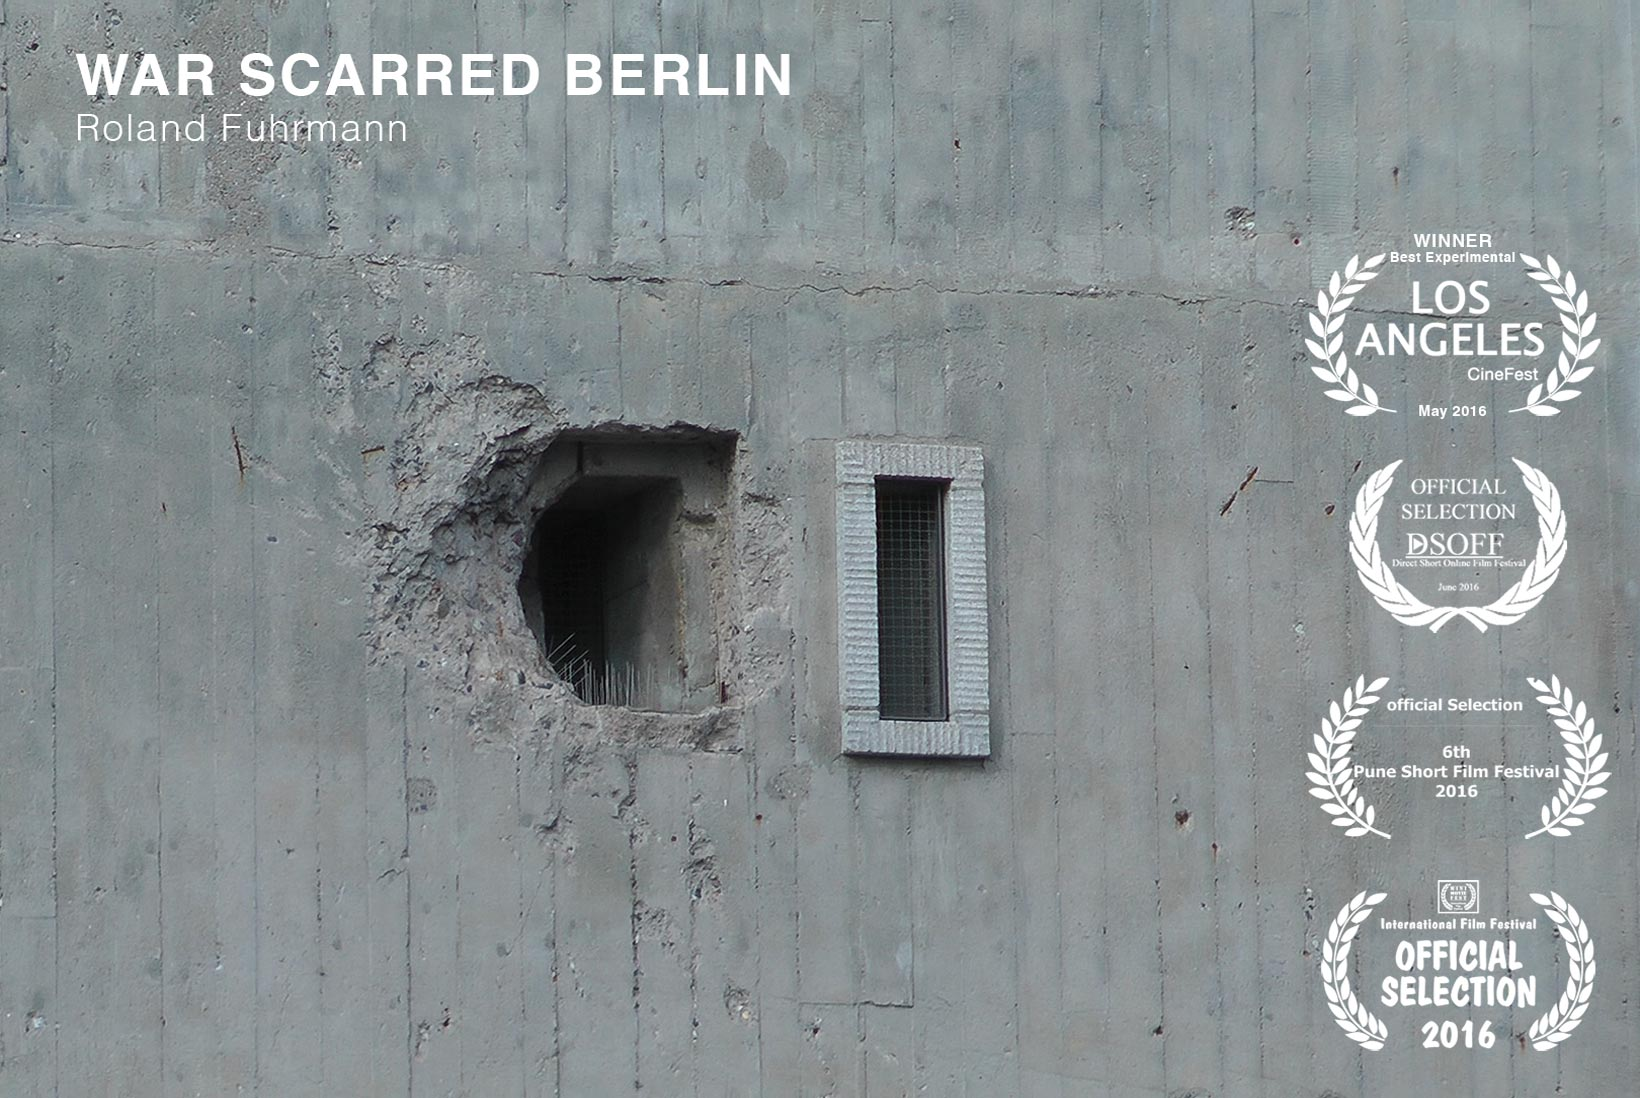 WAR SCARRED BERLIN, Roland Fuhrmann